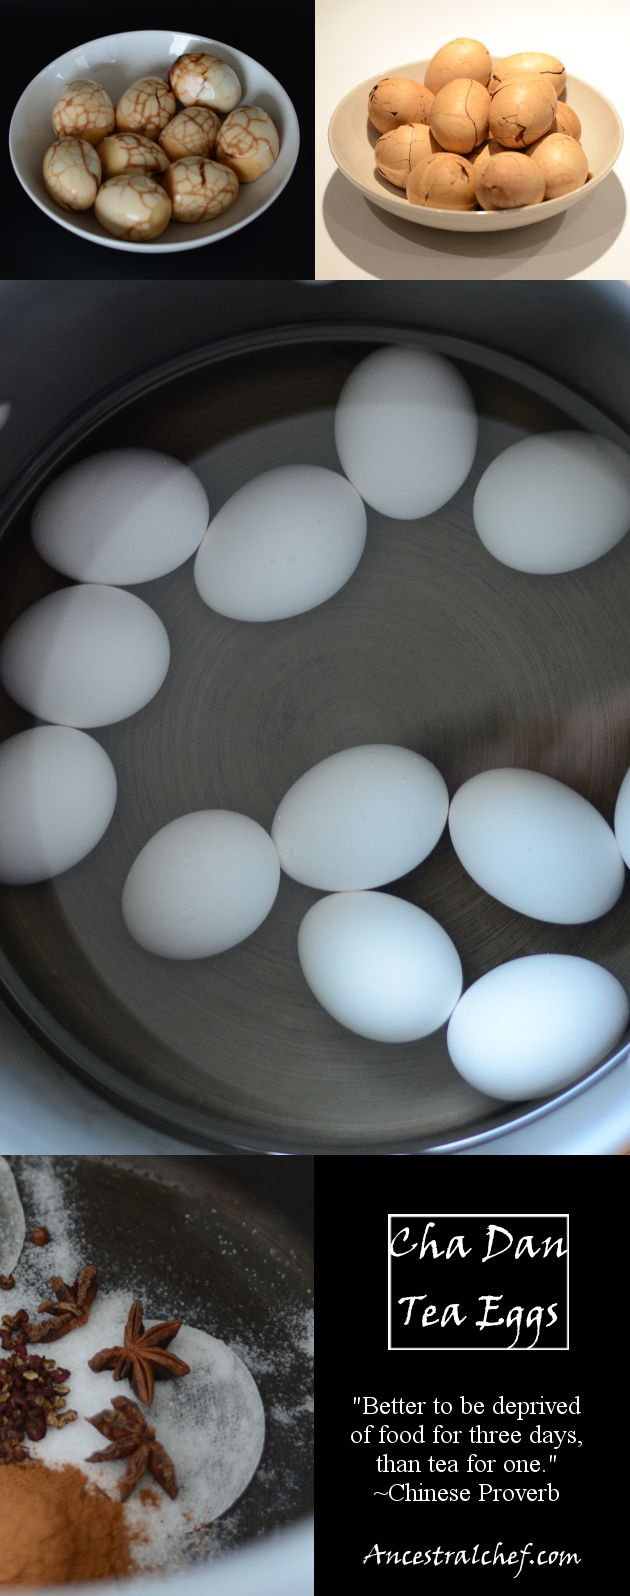 Paleo Tea Eggs (Cha Dan).... I want to try these! I bet they're super delicious!